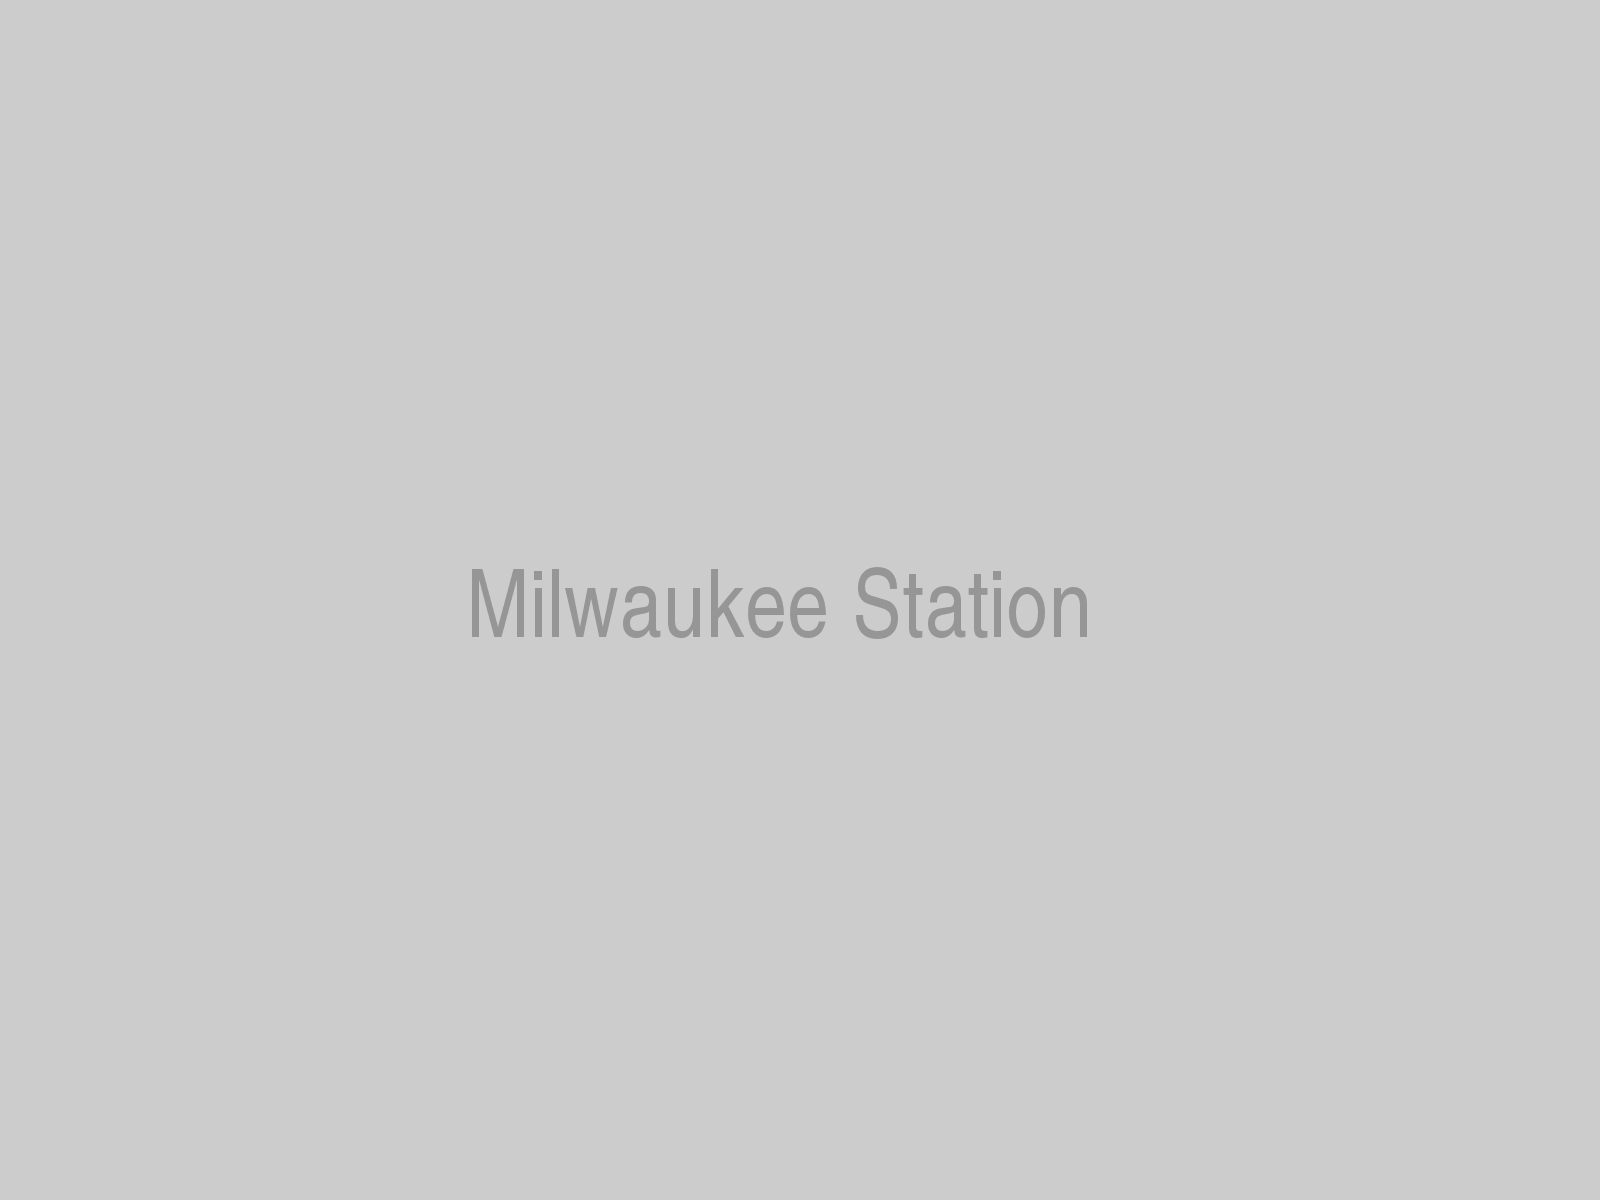 Milwaukee Station